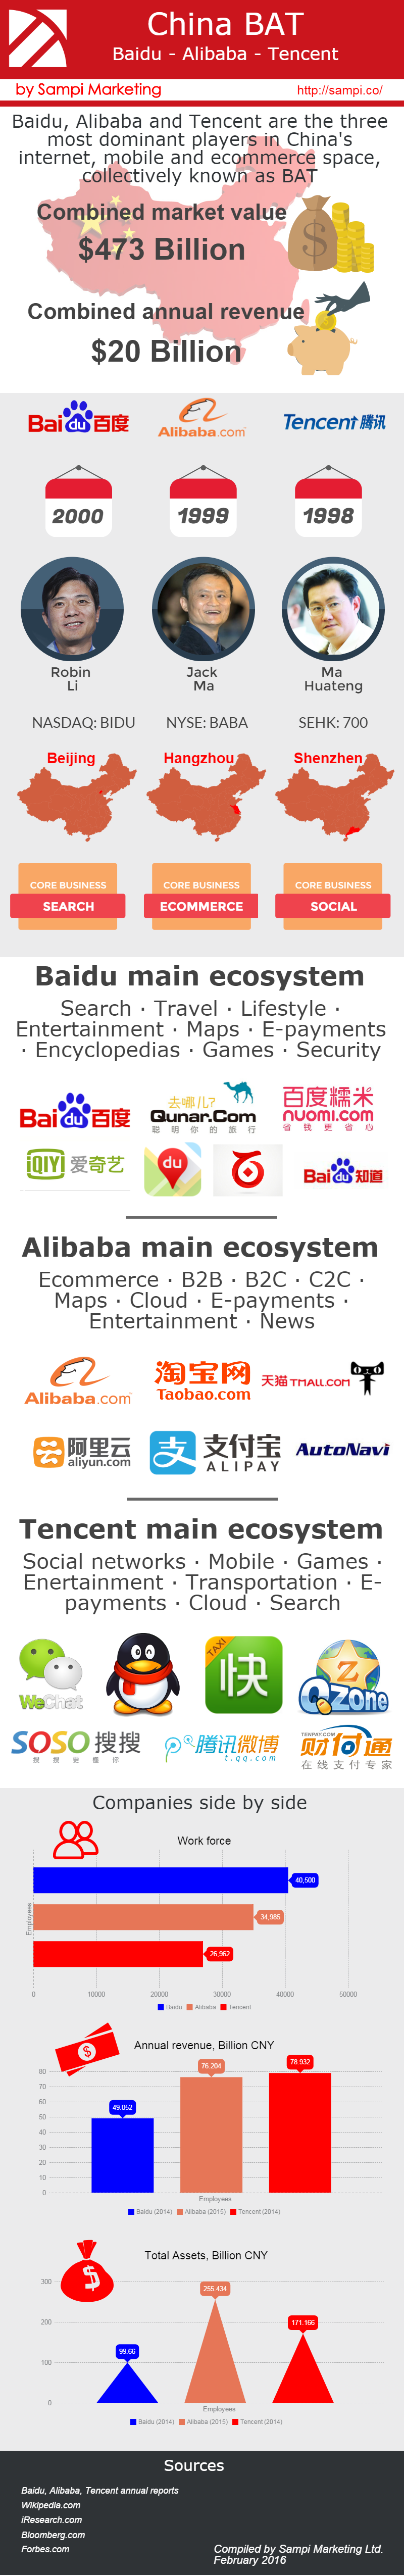 China BAT baidu-alibaba tencent Sampi Marketing